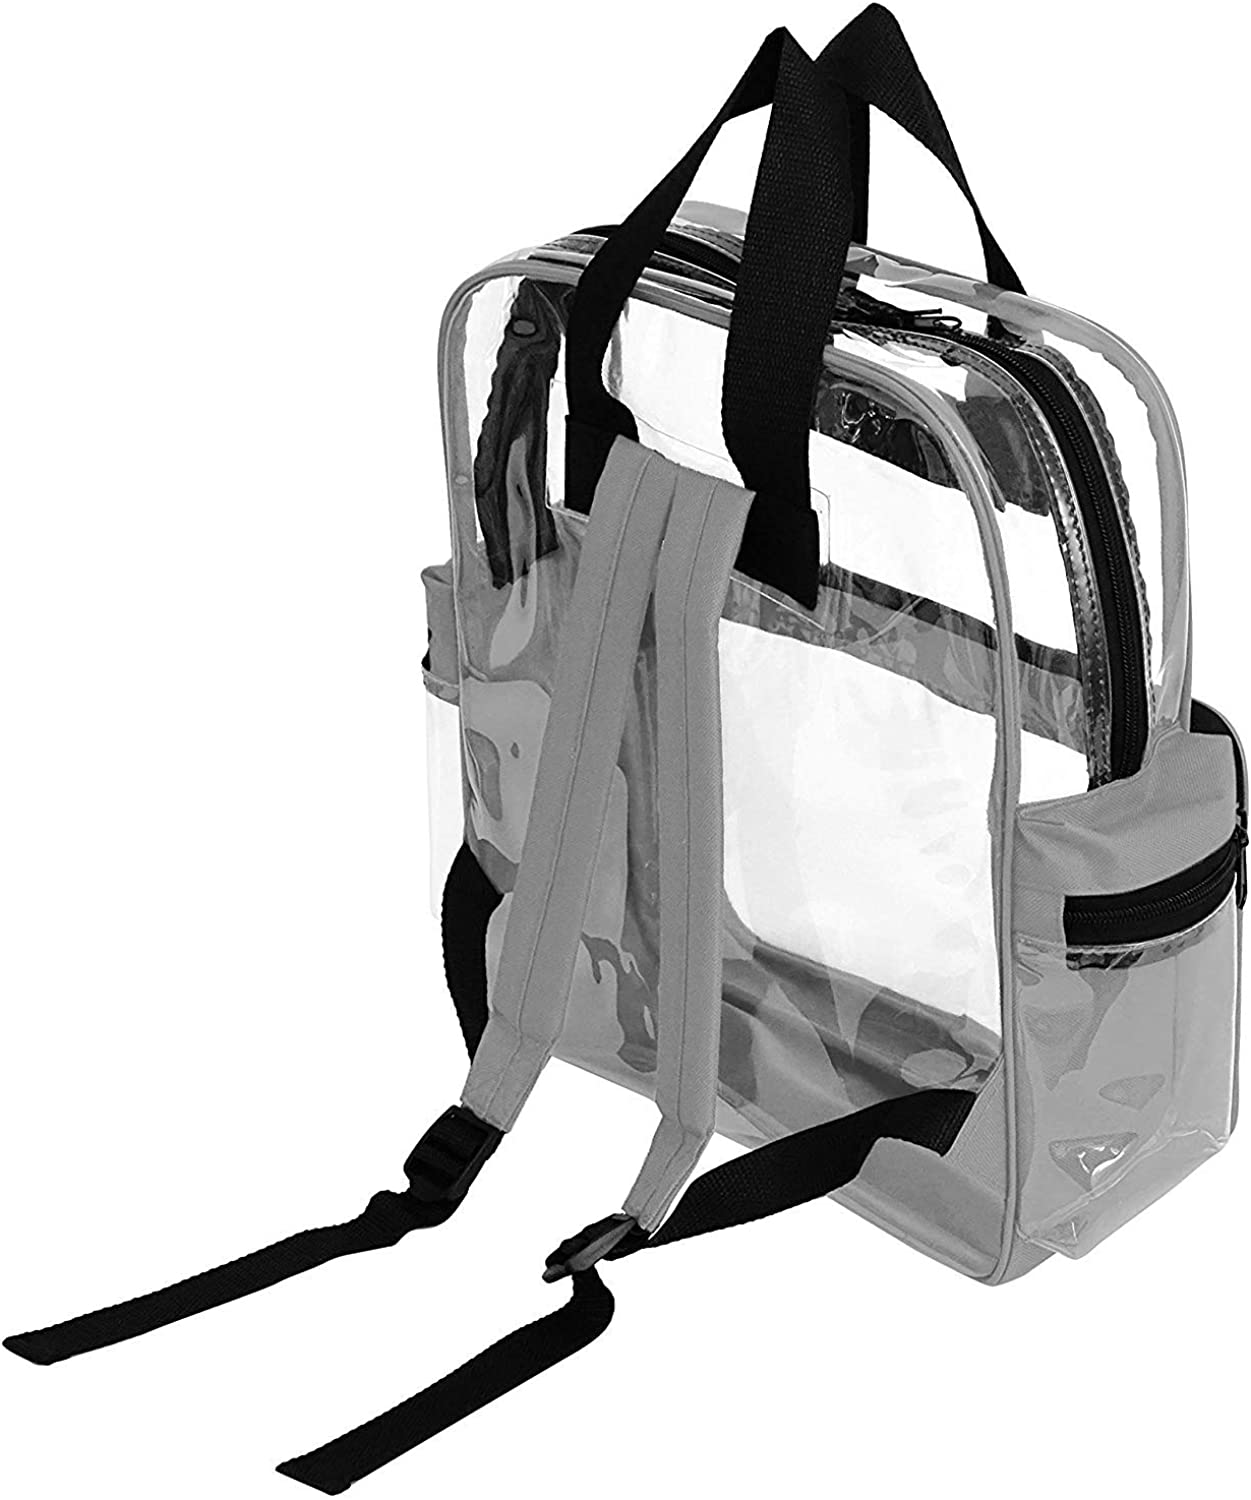 ProEquip Travel Bag Clear Unisex Transparent School Security Backpack